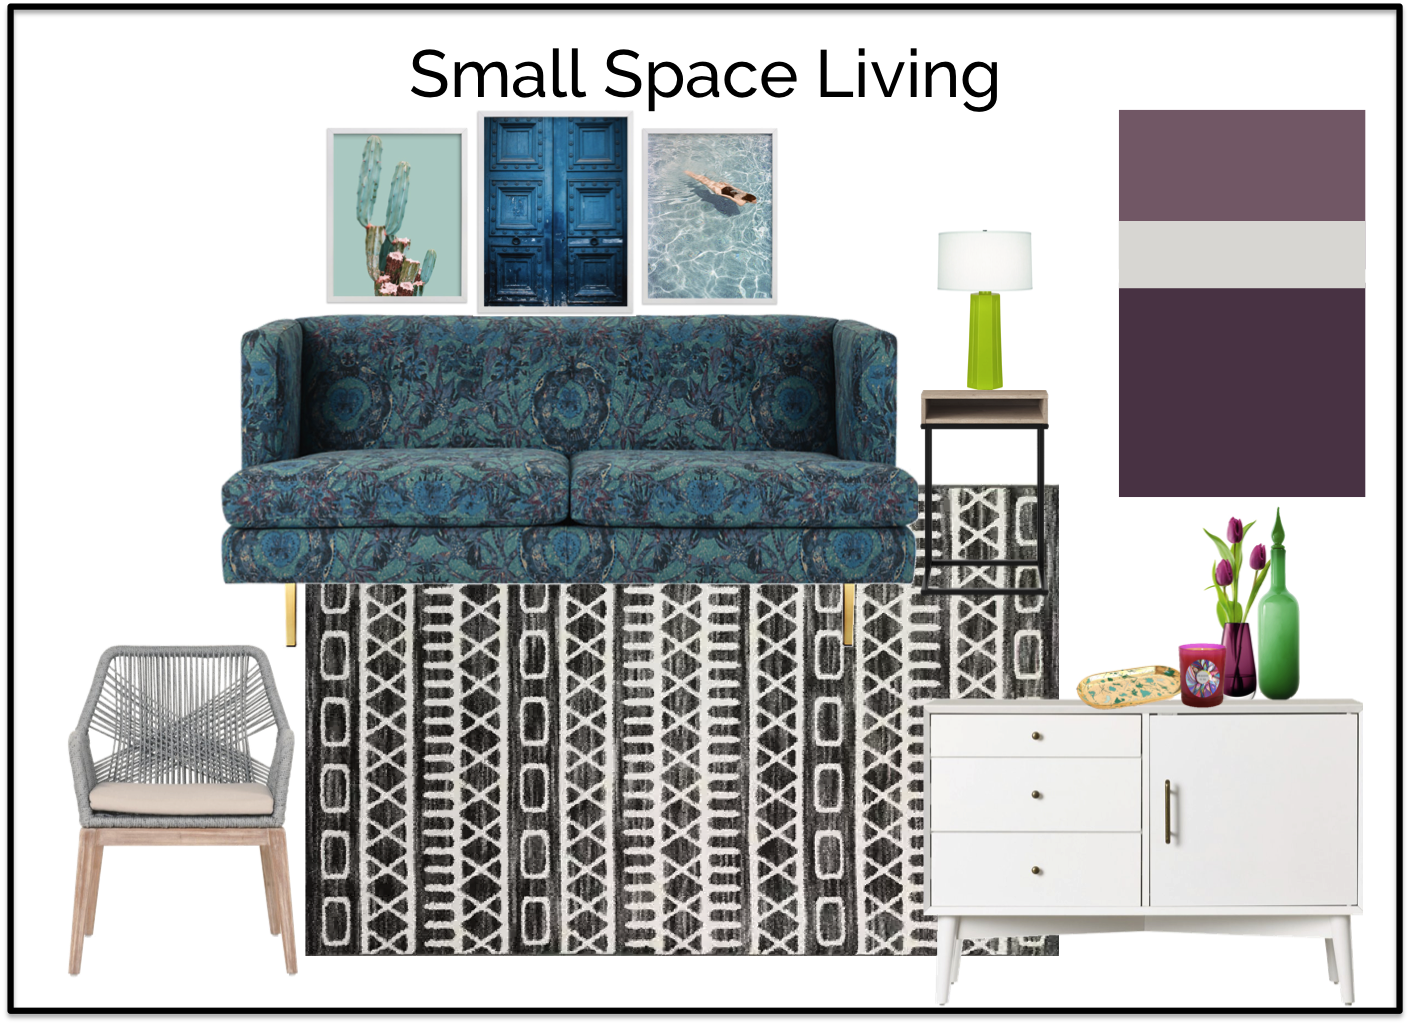 Design Board Small Space Living.png